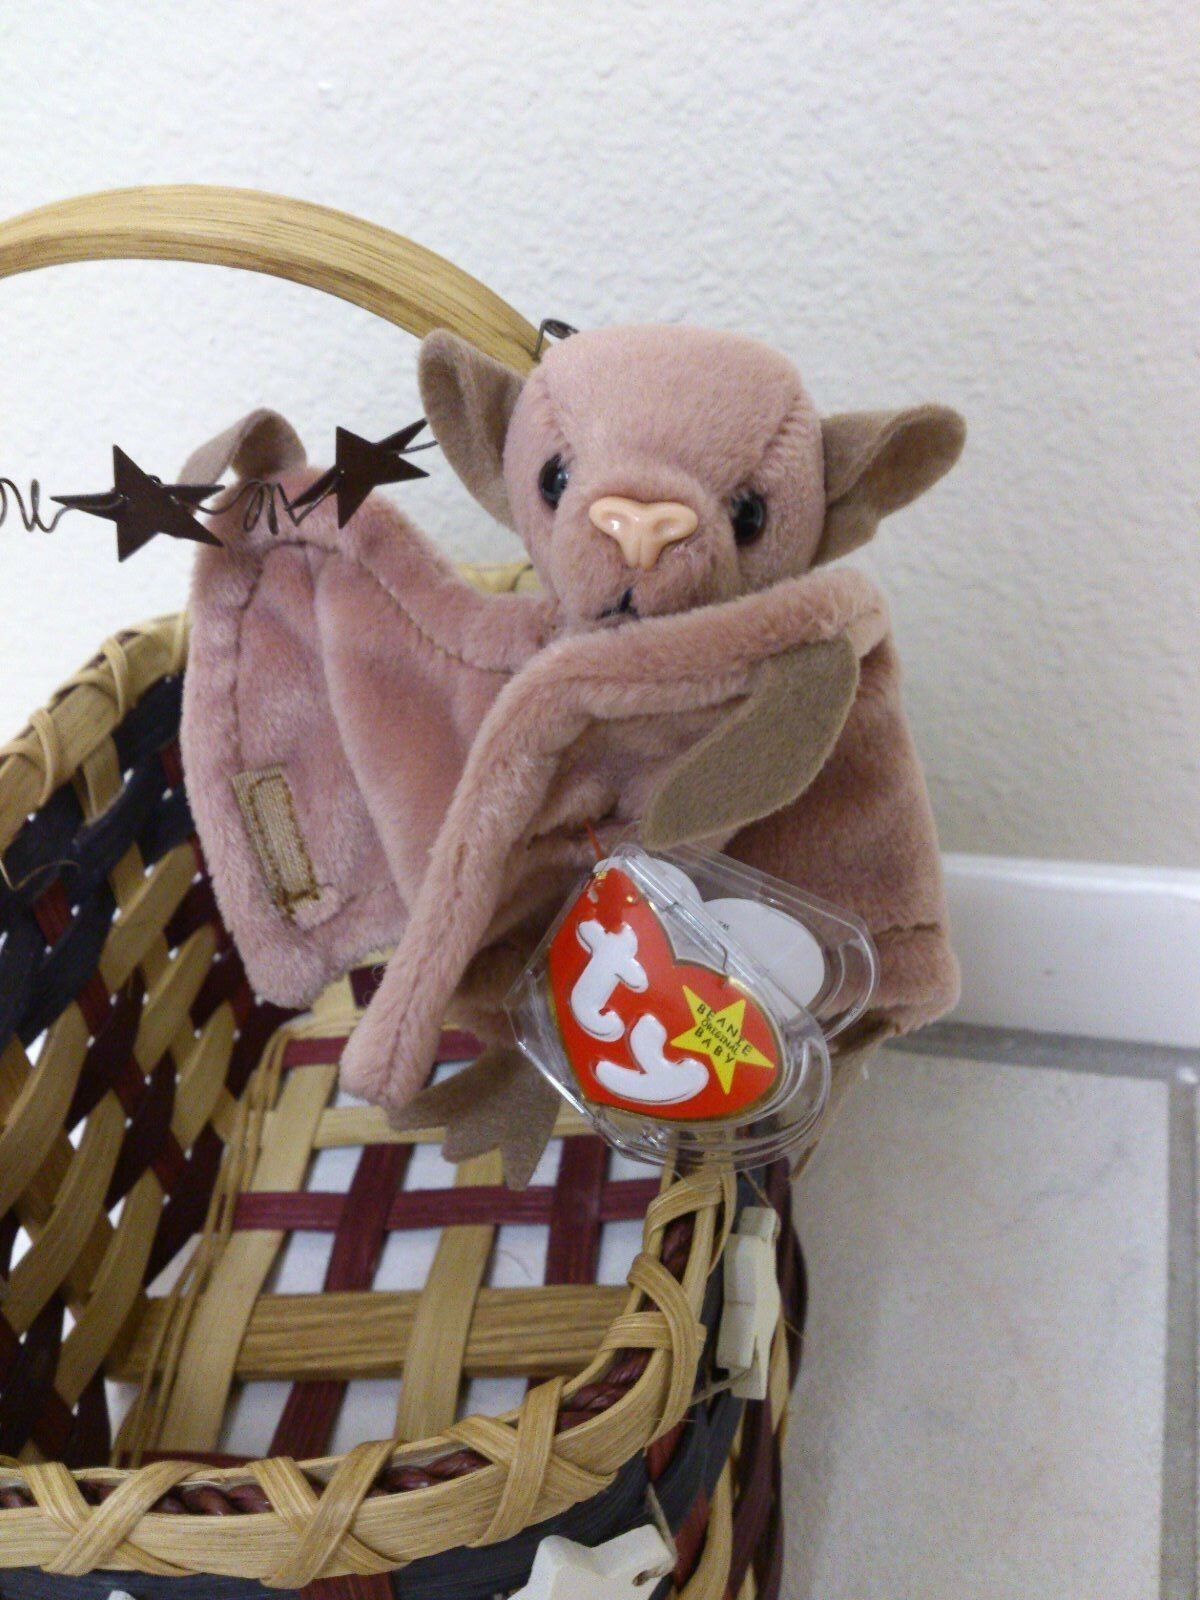 Ty BEANNIE BABY  BATTY  RARE RETIRED WITH TAG ERROR  MINT CONDITION